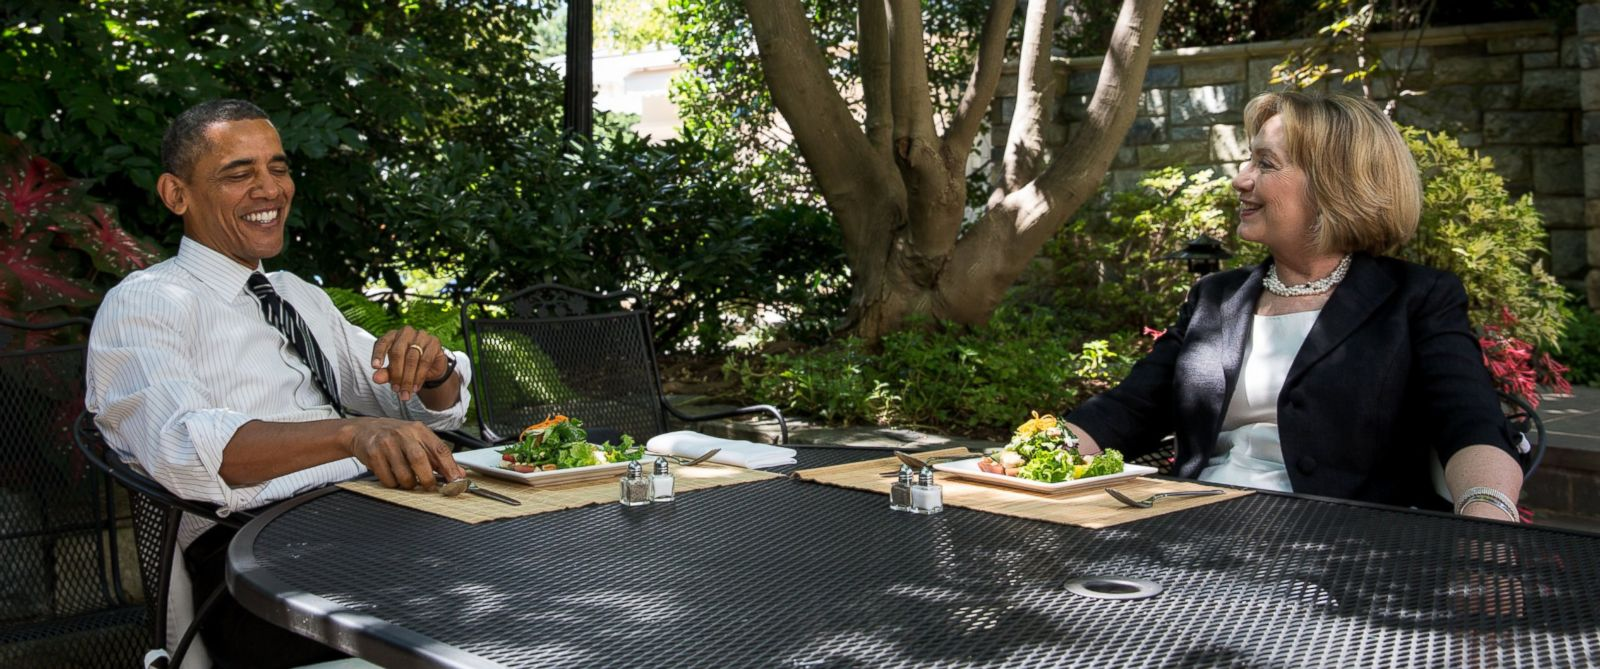 President Obama And Hillary Clinton Meet For Lunch At